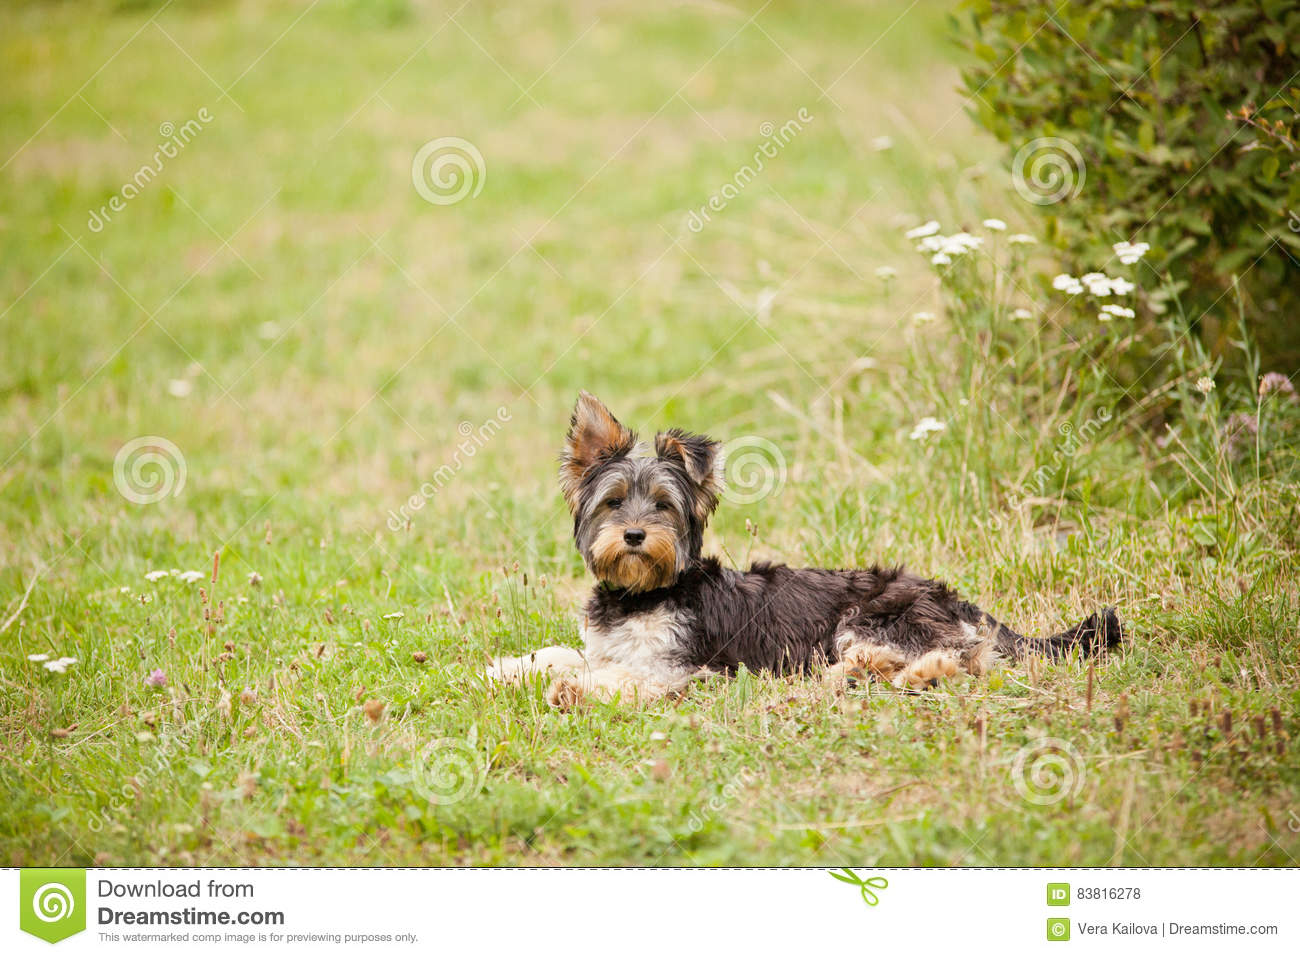 Junger Yorshire-Terrier